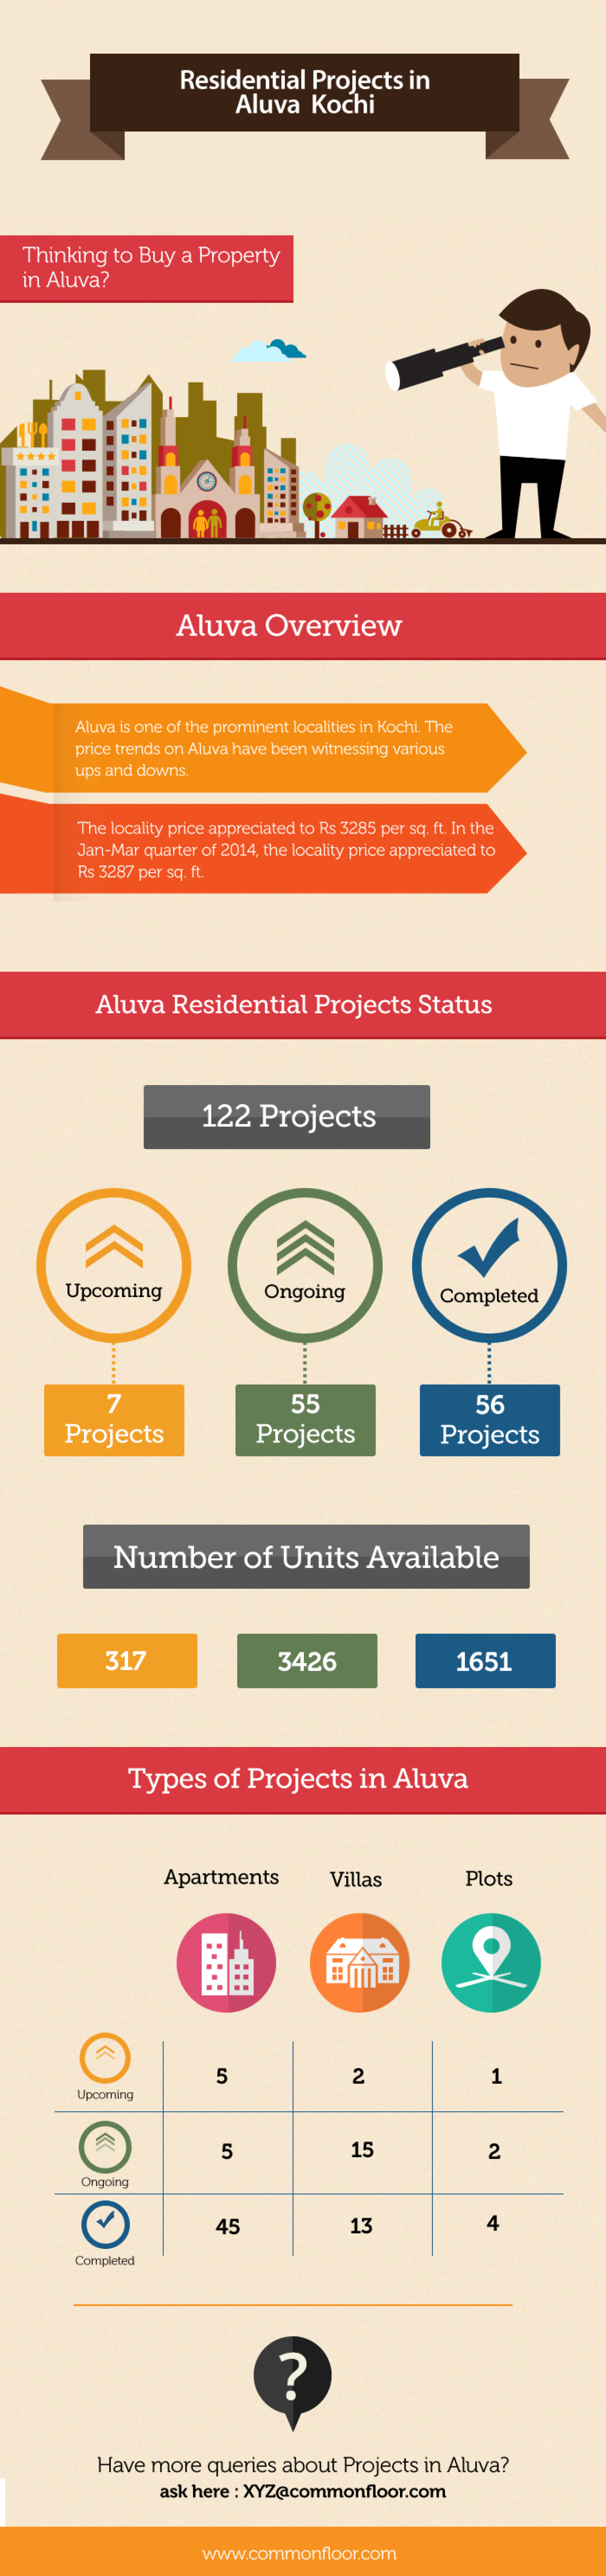 Residential Projects in Aluva, Kochi Infographic